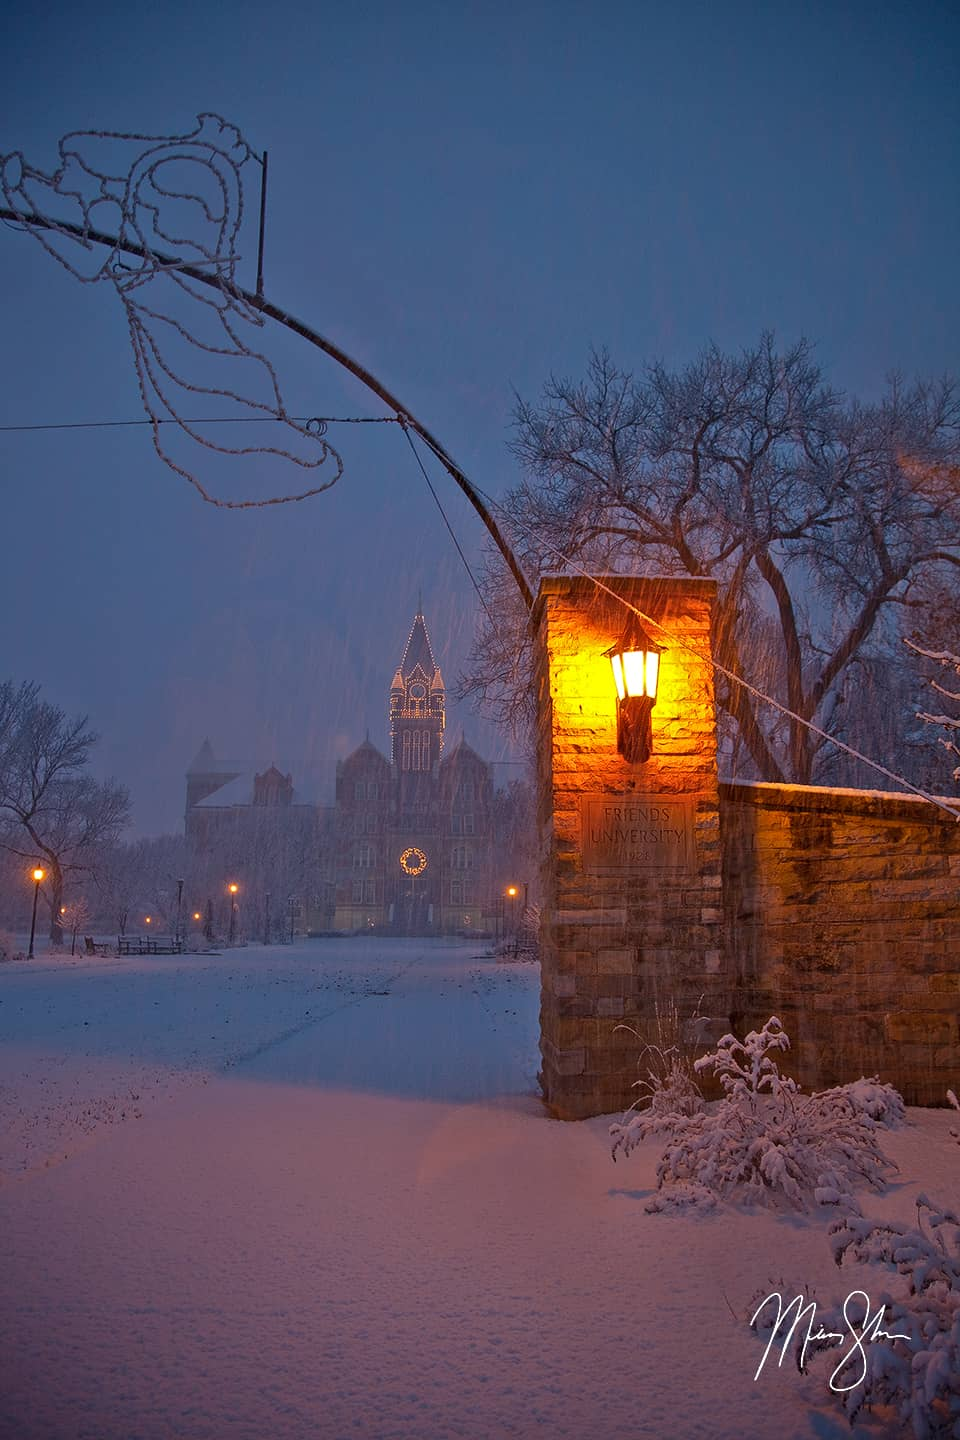 Snowy Scene at Friends University - Friends University, Wichita, KS